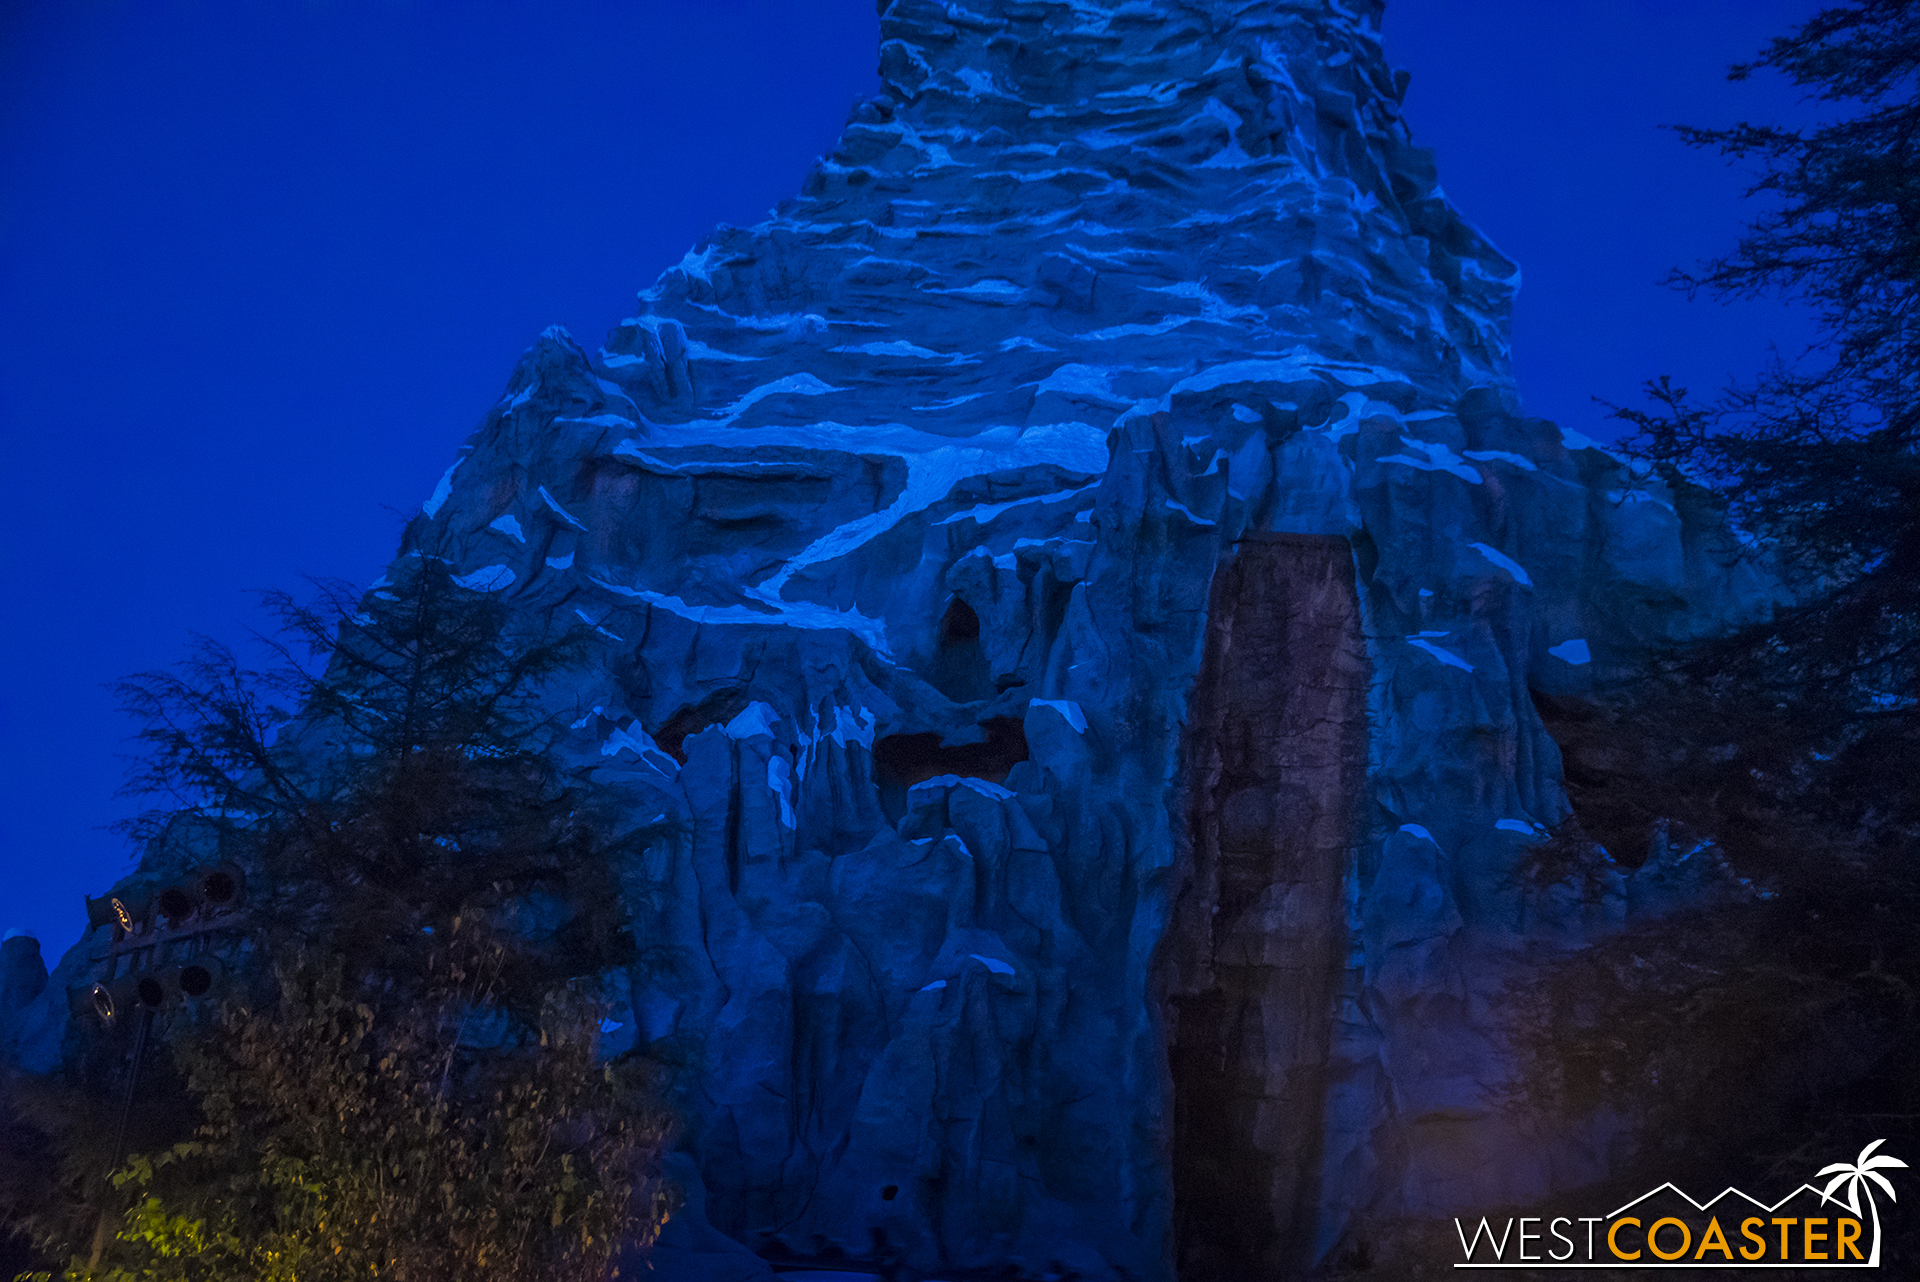 Finally, due to the return of drought conditions, the Matterhorn has turned off its flowing water to save on resources.  Okay, not really, but that sounded believable, right? Matterhorn's not down. The waterfall was just off for some reason on Sunday.